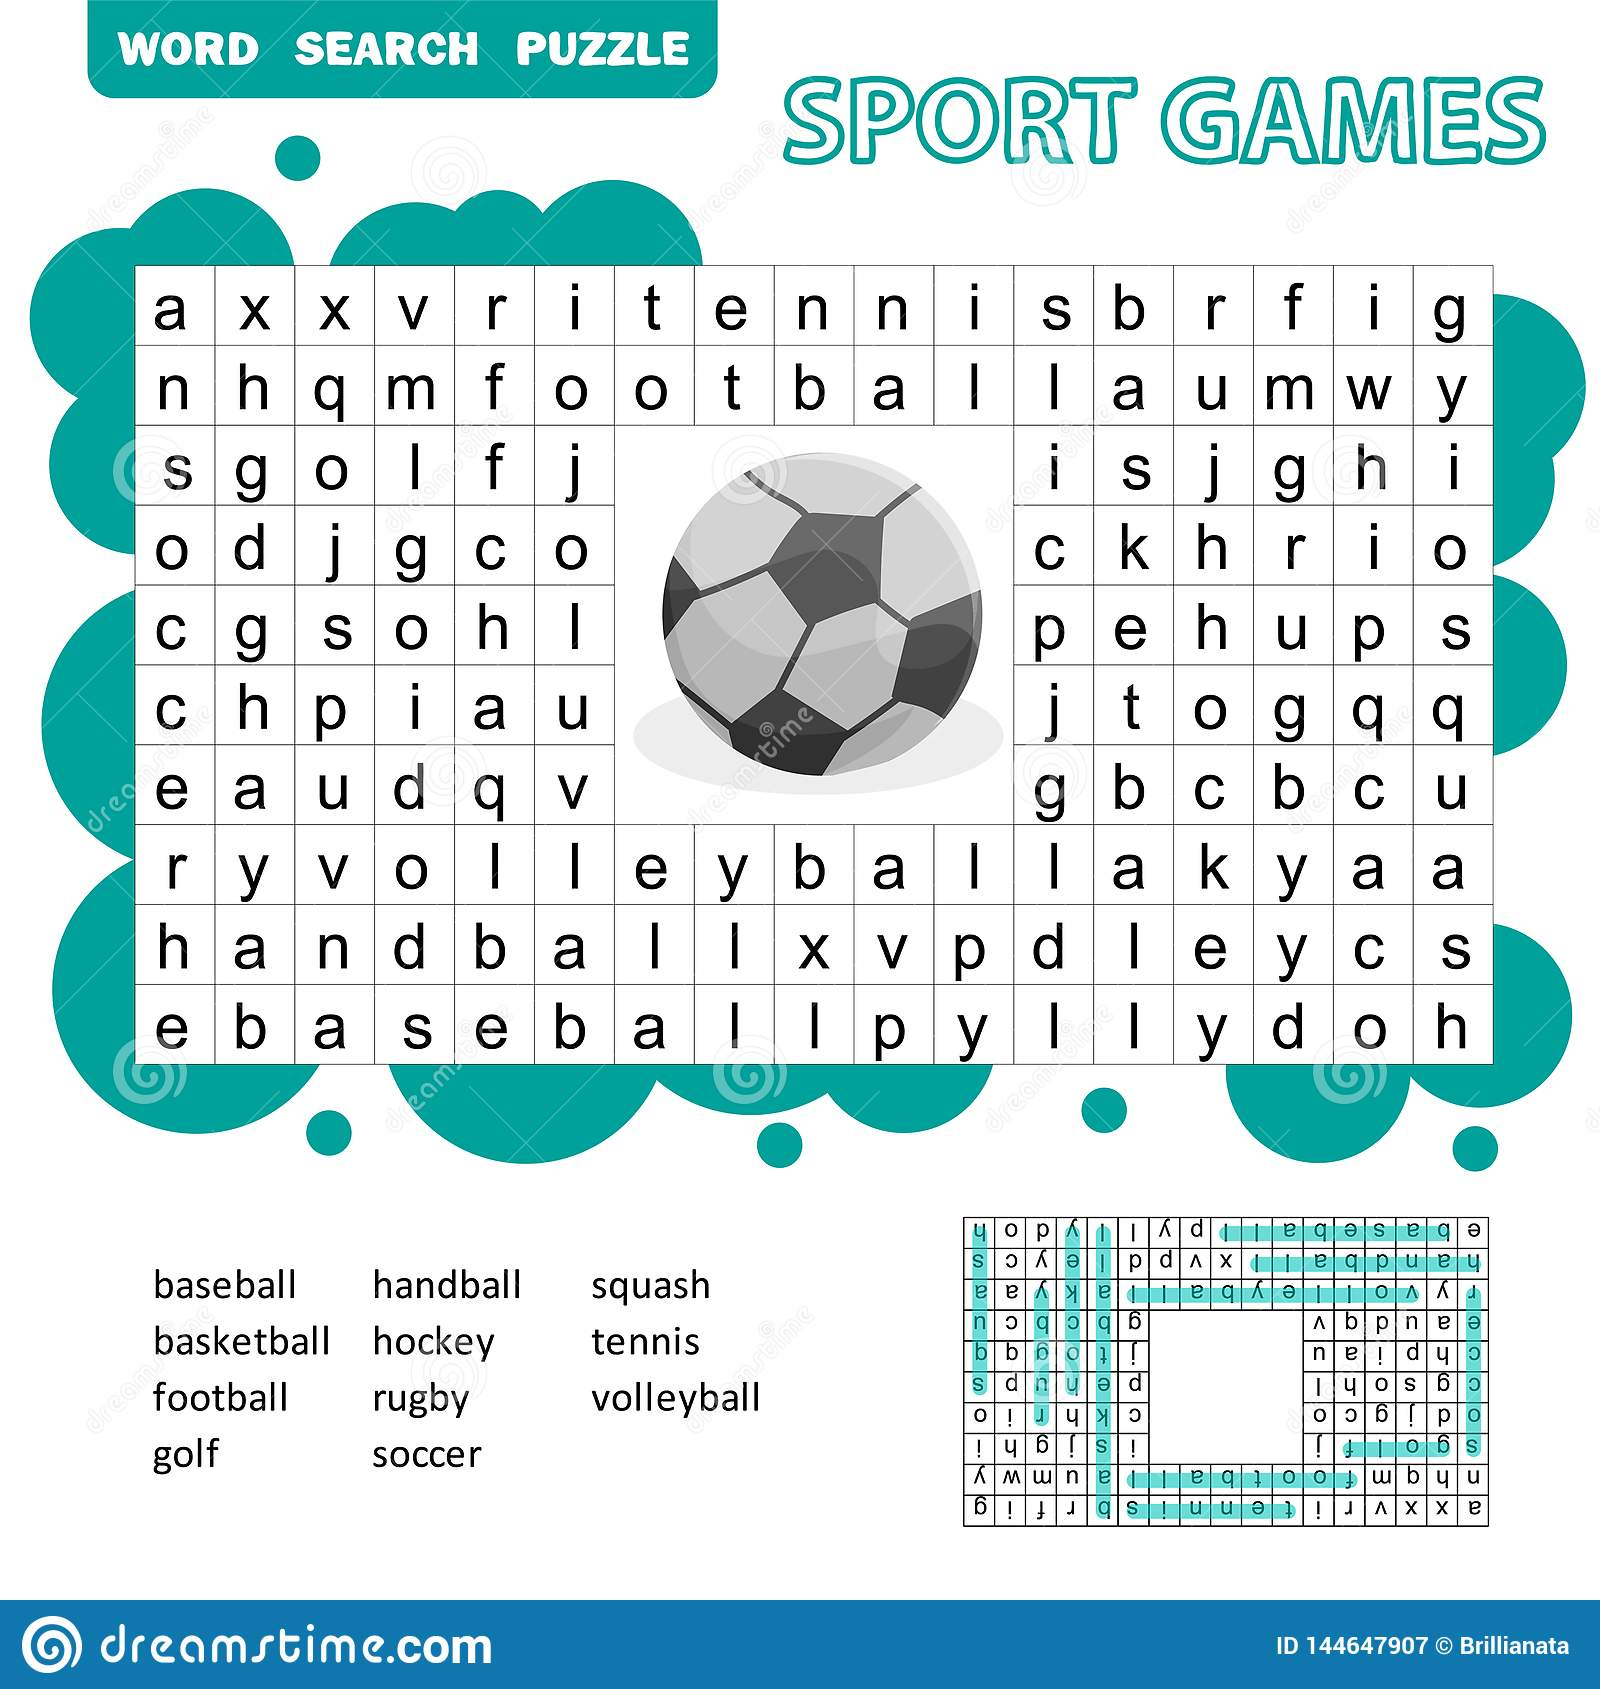 Sport Games Themed Word Search Puzzle For Kids Answer